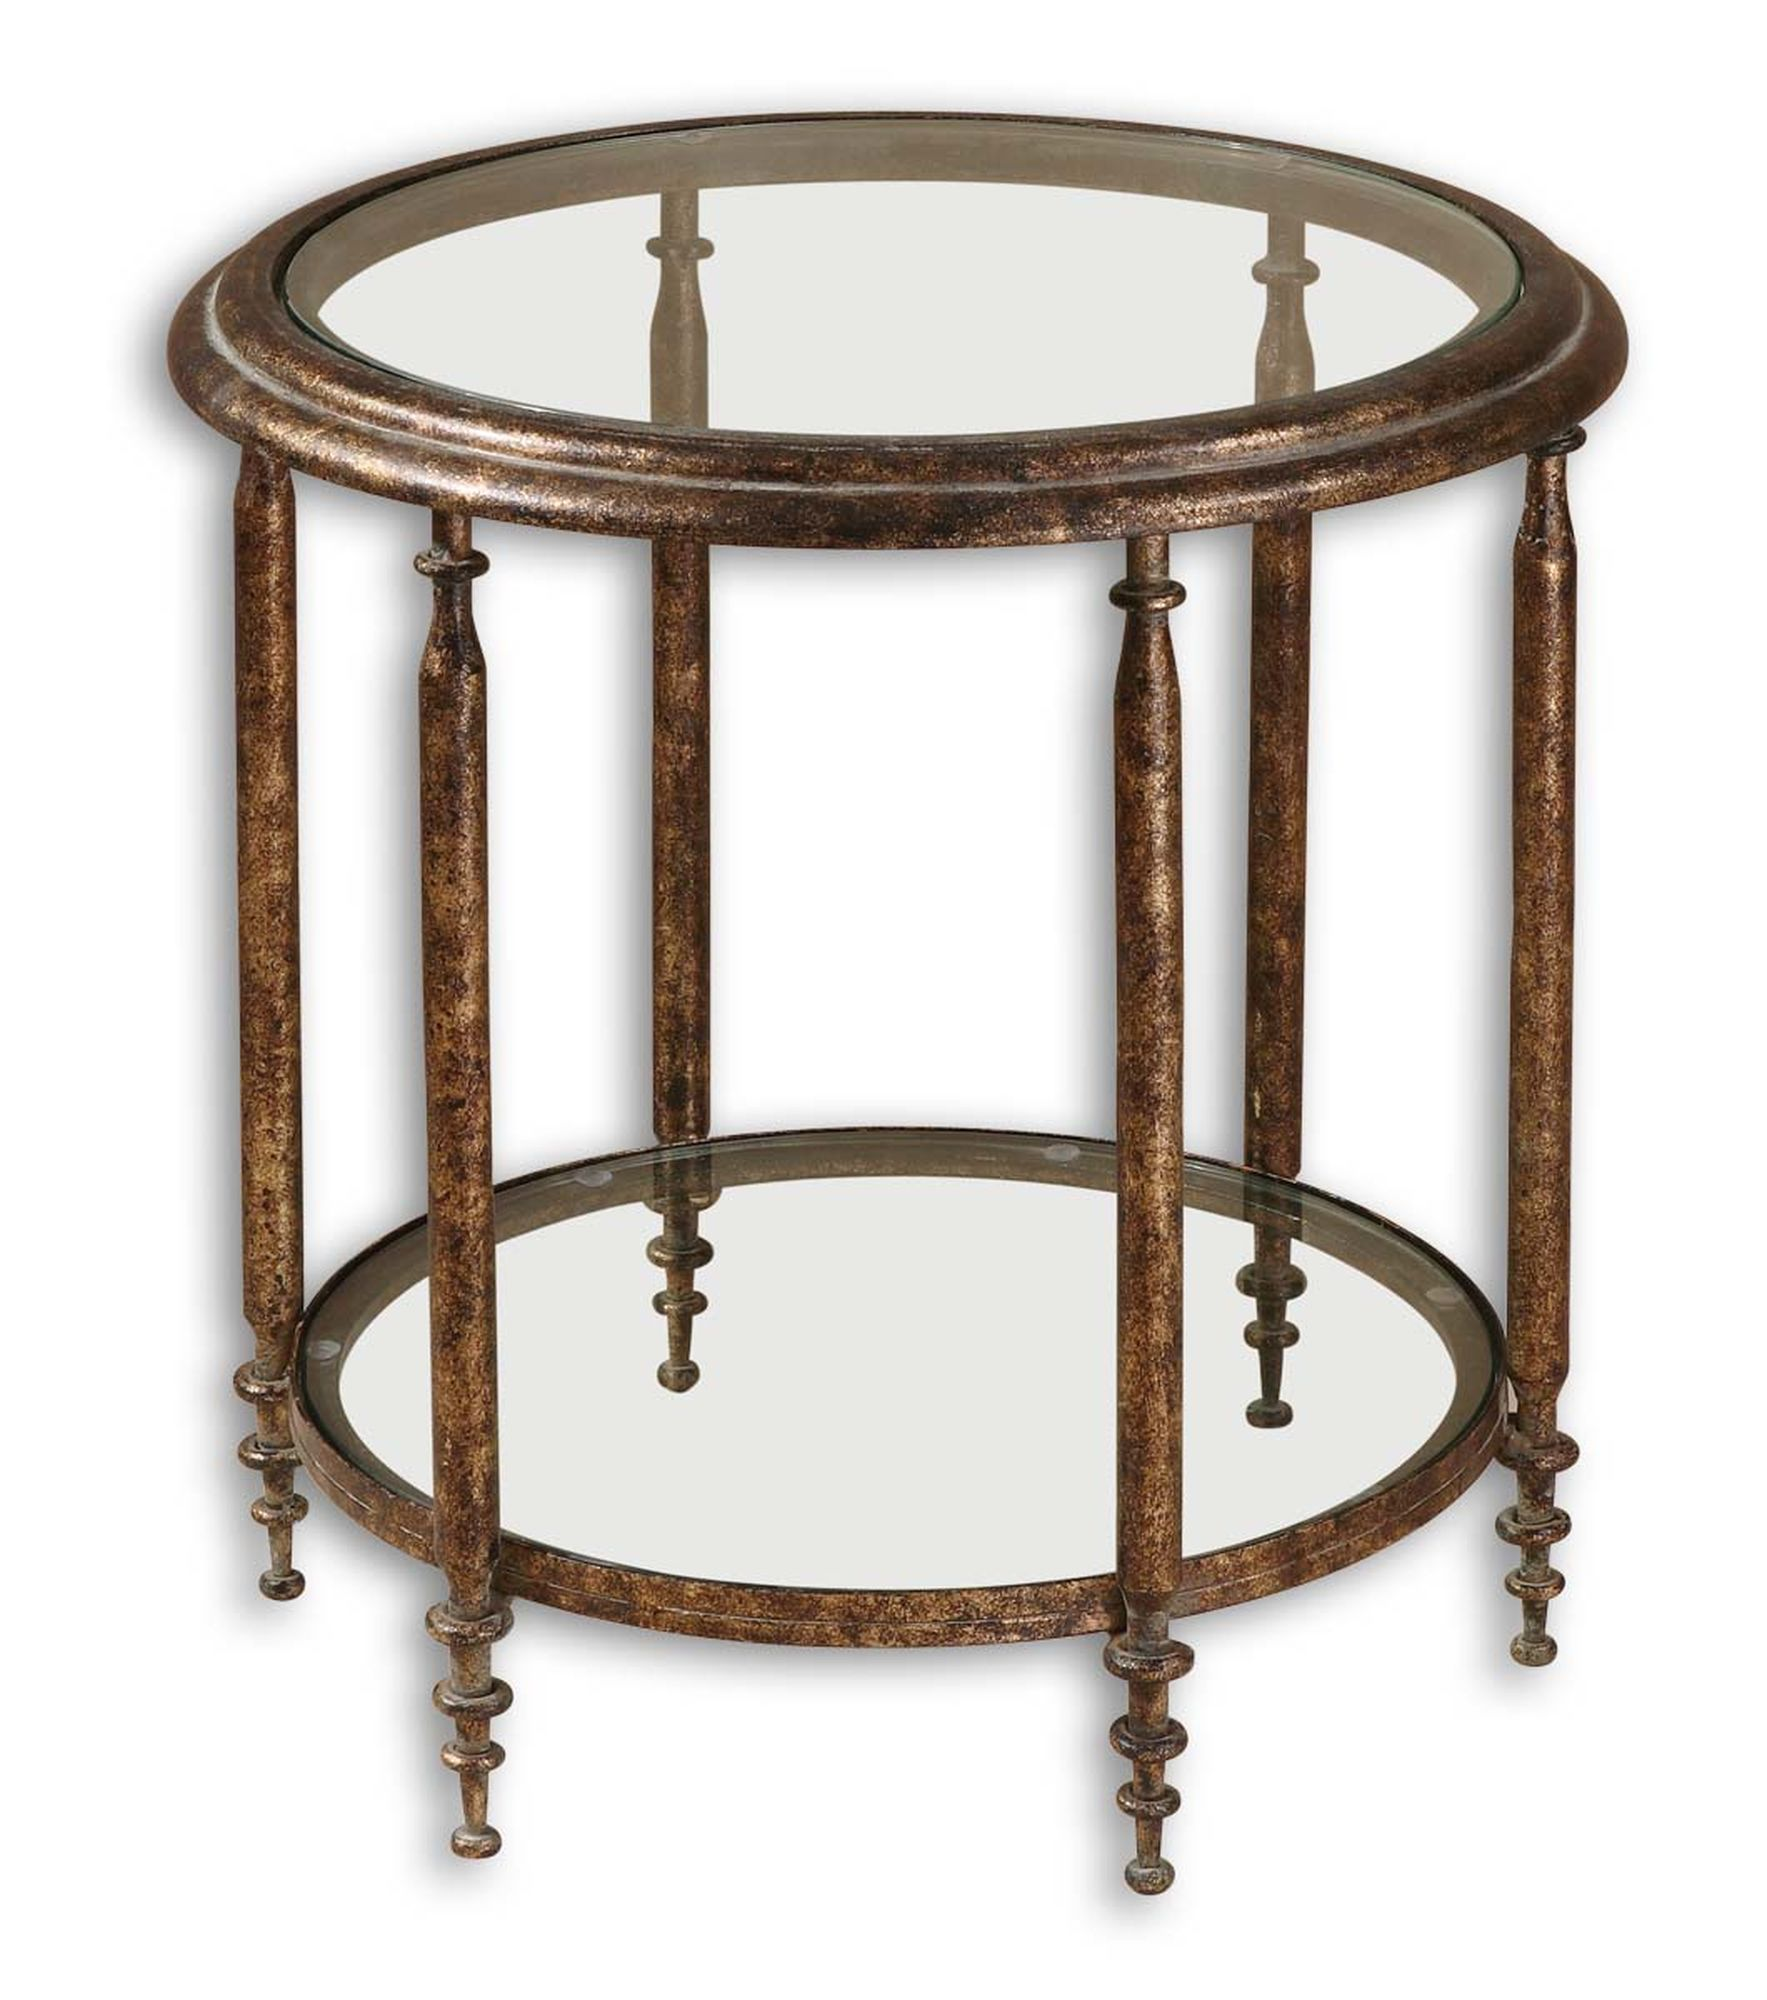 clear glass top round accent table with one shelf brown mathis wireless lamps pier imports rugs wood and end tables modern buffet tall console inch tablecloth living room interior